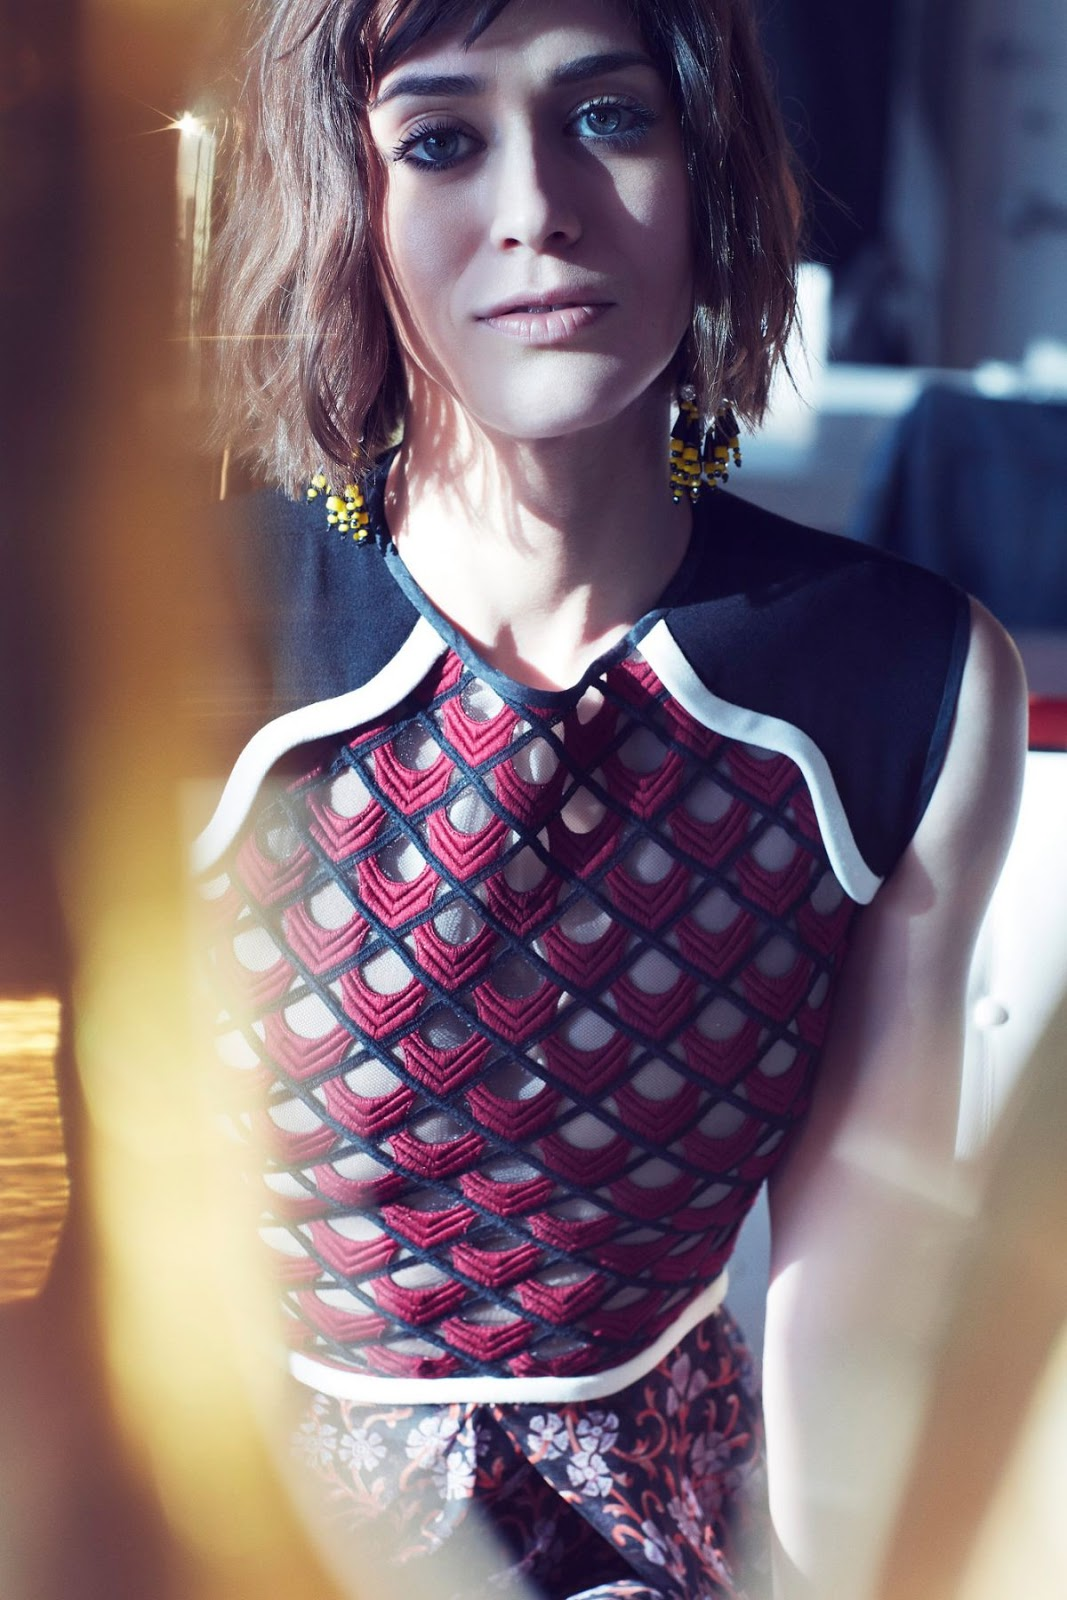 'Now You See Me 2' actress Lizzy Caplan Shoot for Rhapsody Magazine June 2016 Issue